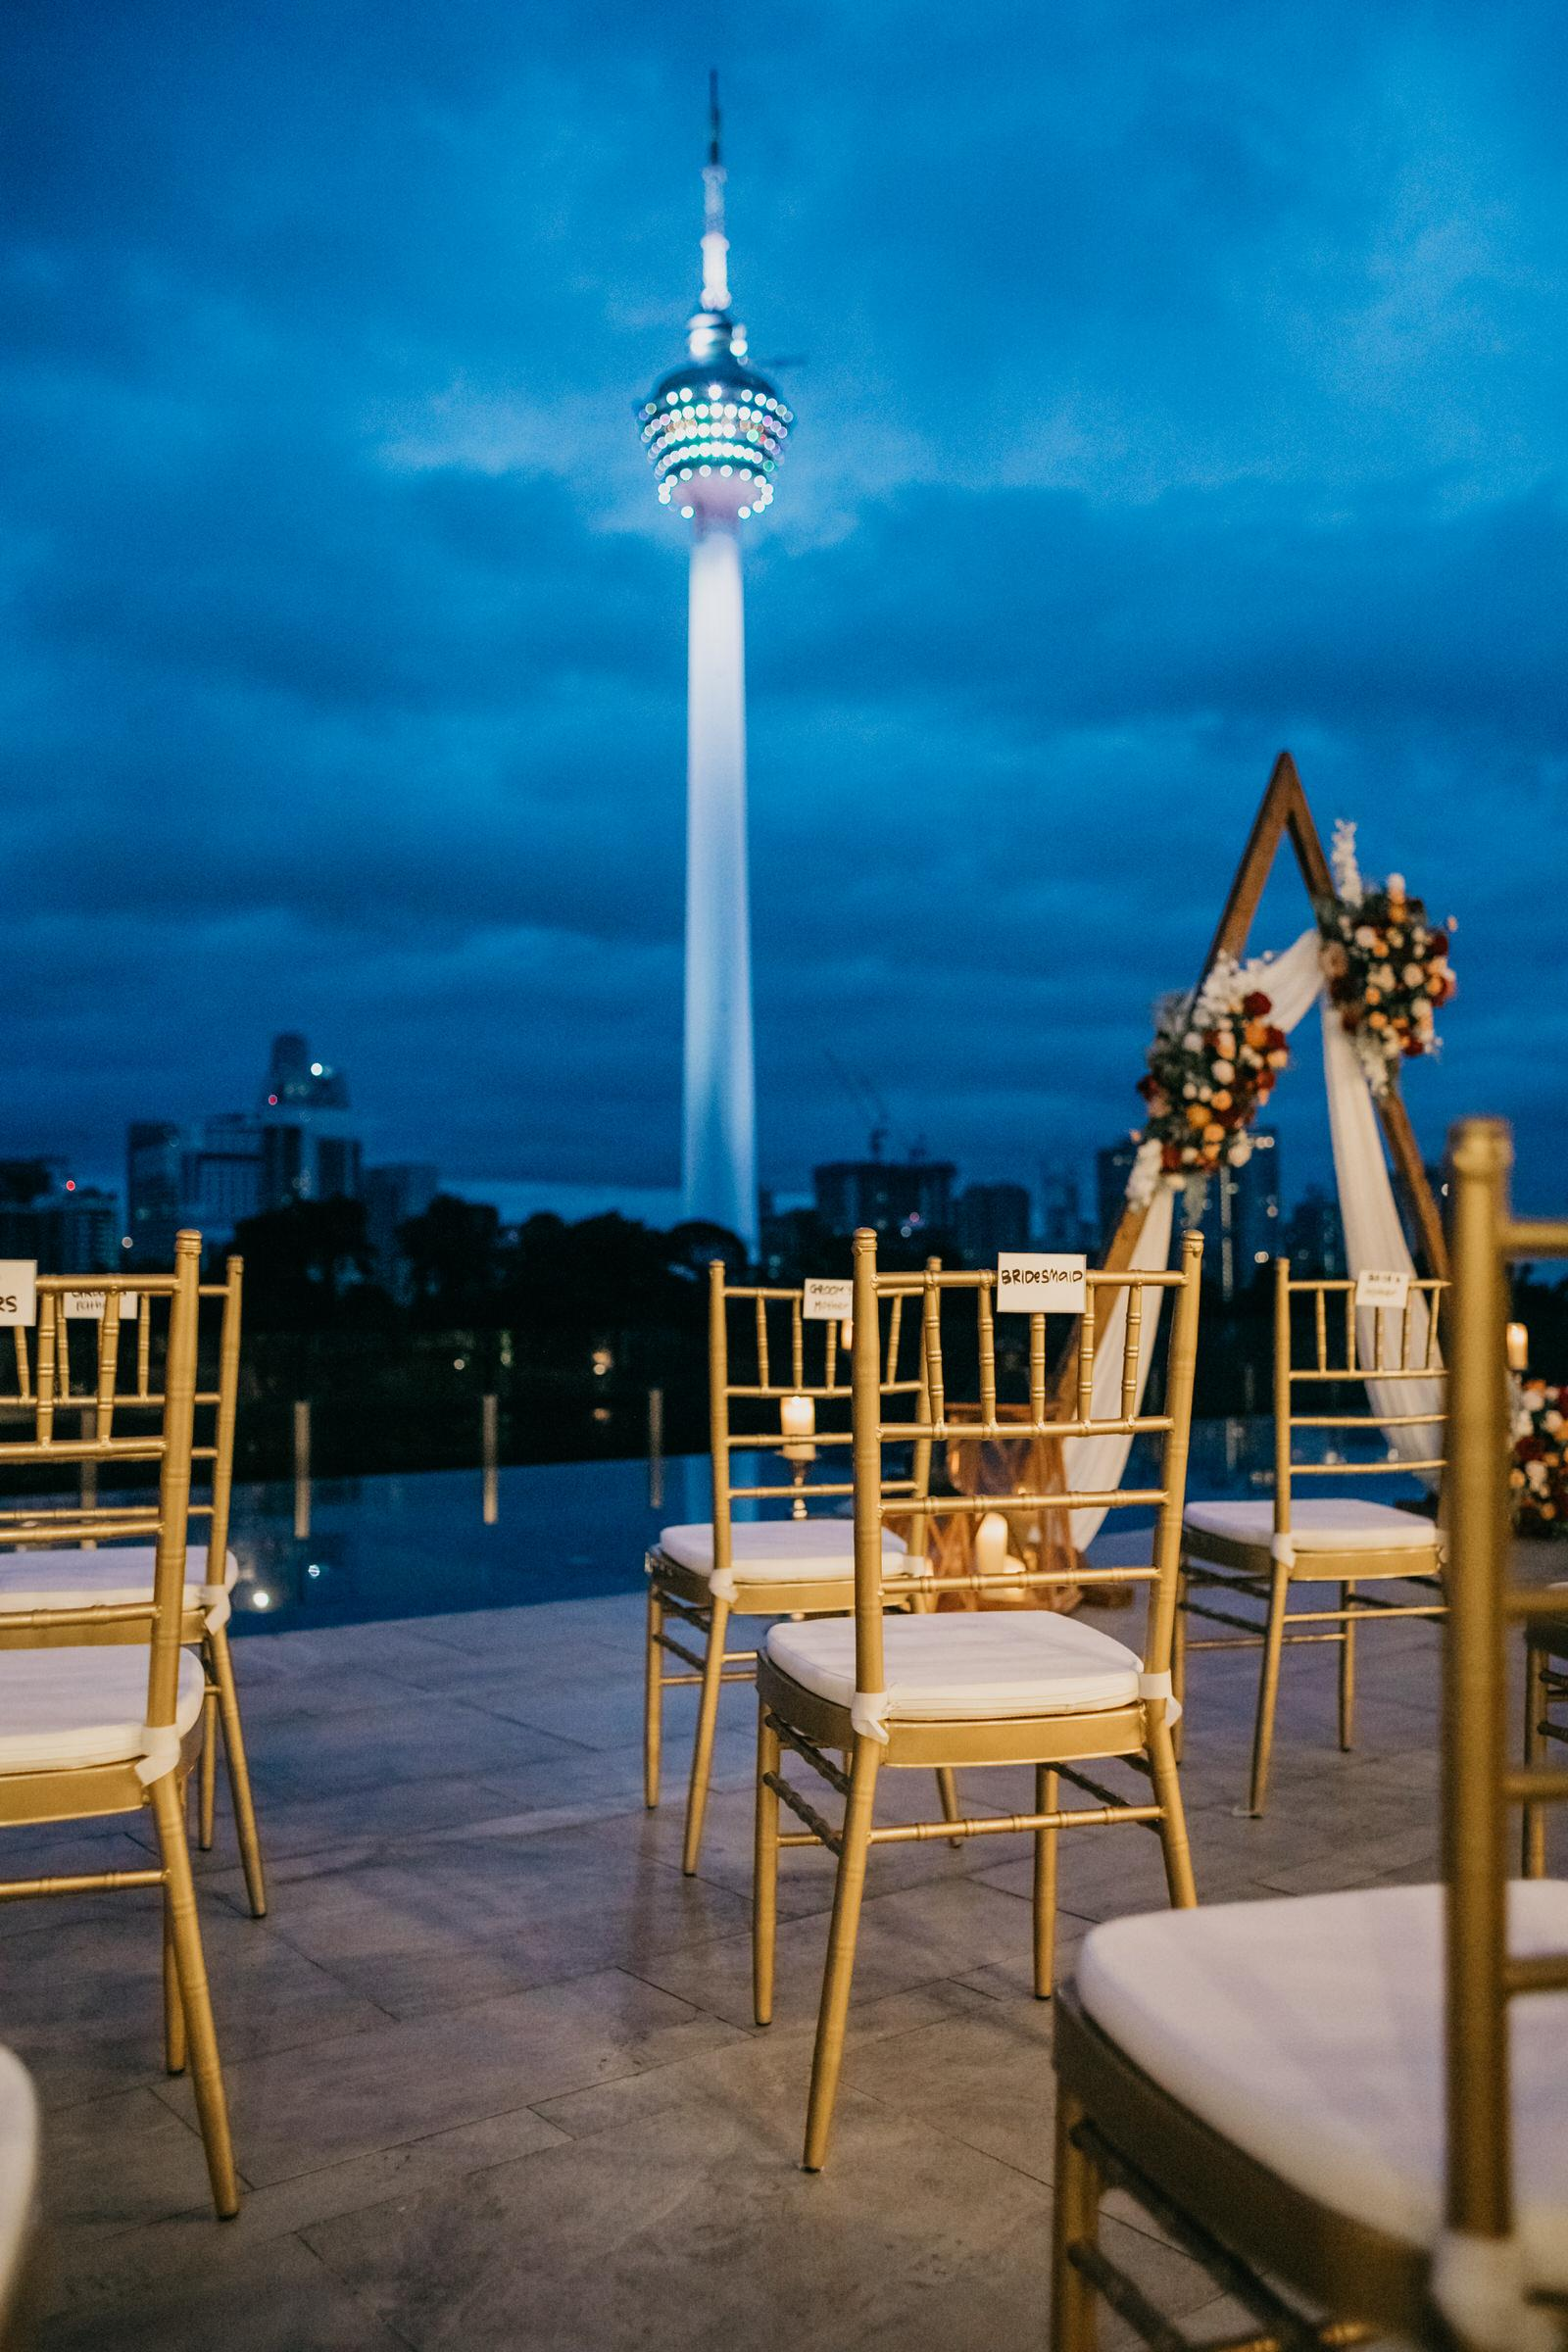 A Rooftop Poolside Wedding at Hotel Stripes Kuala Lumpur MCO2.0 Cliff Choong Photography Malaysia Covid19 ROM KL Tower